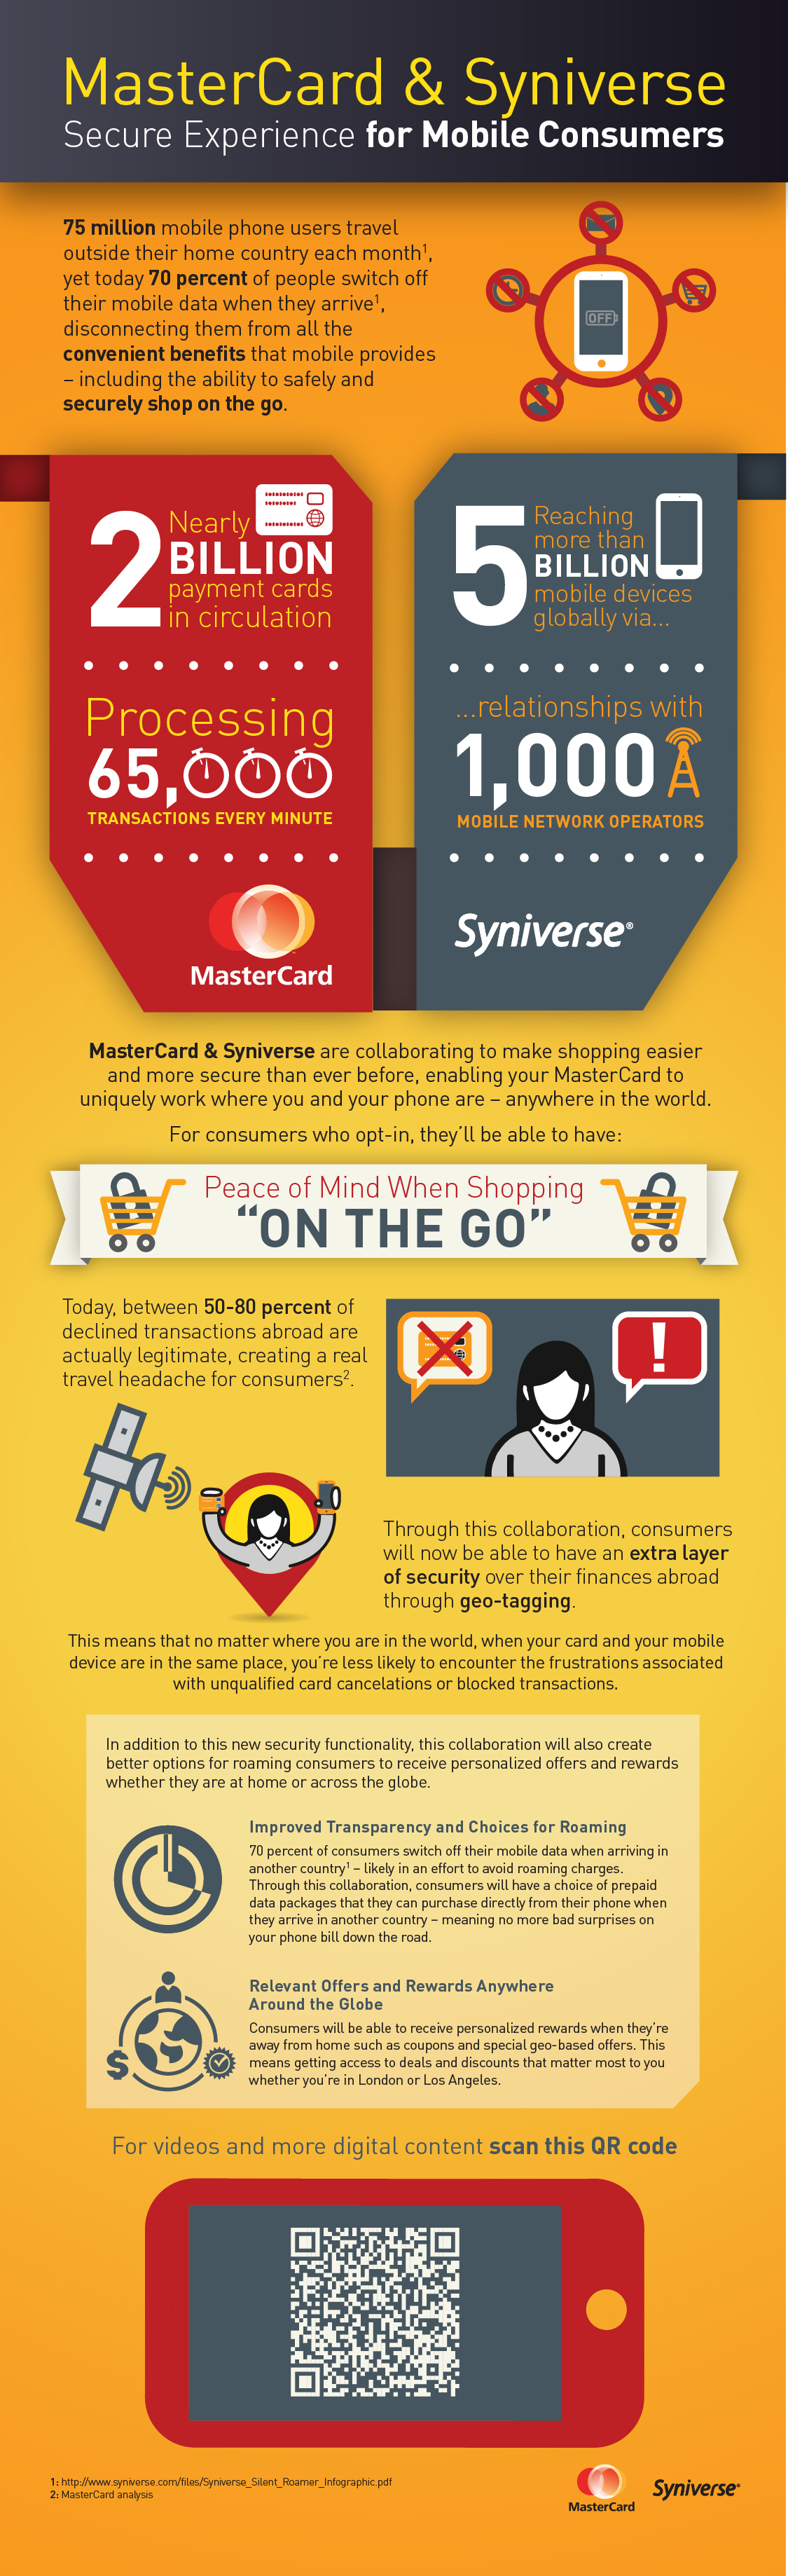 MasterCard & Syniverse are collaborating to make shopping 'on the go' easier and more secure than ever before, enabling your MasterCard to uniquely work where you and your phone are - anywhere in the world. (Graphic: Business Wire)